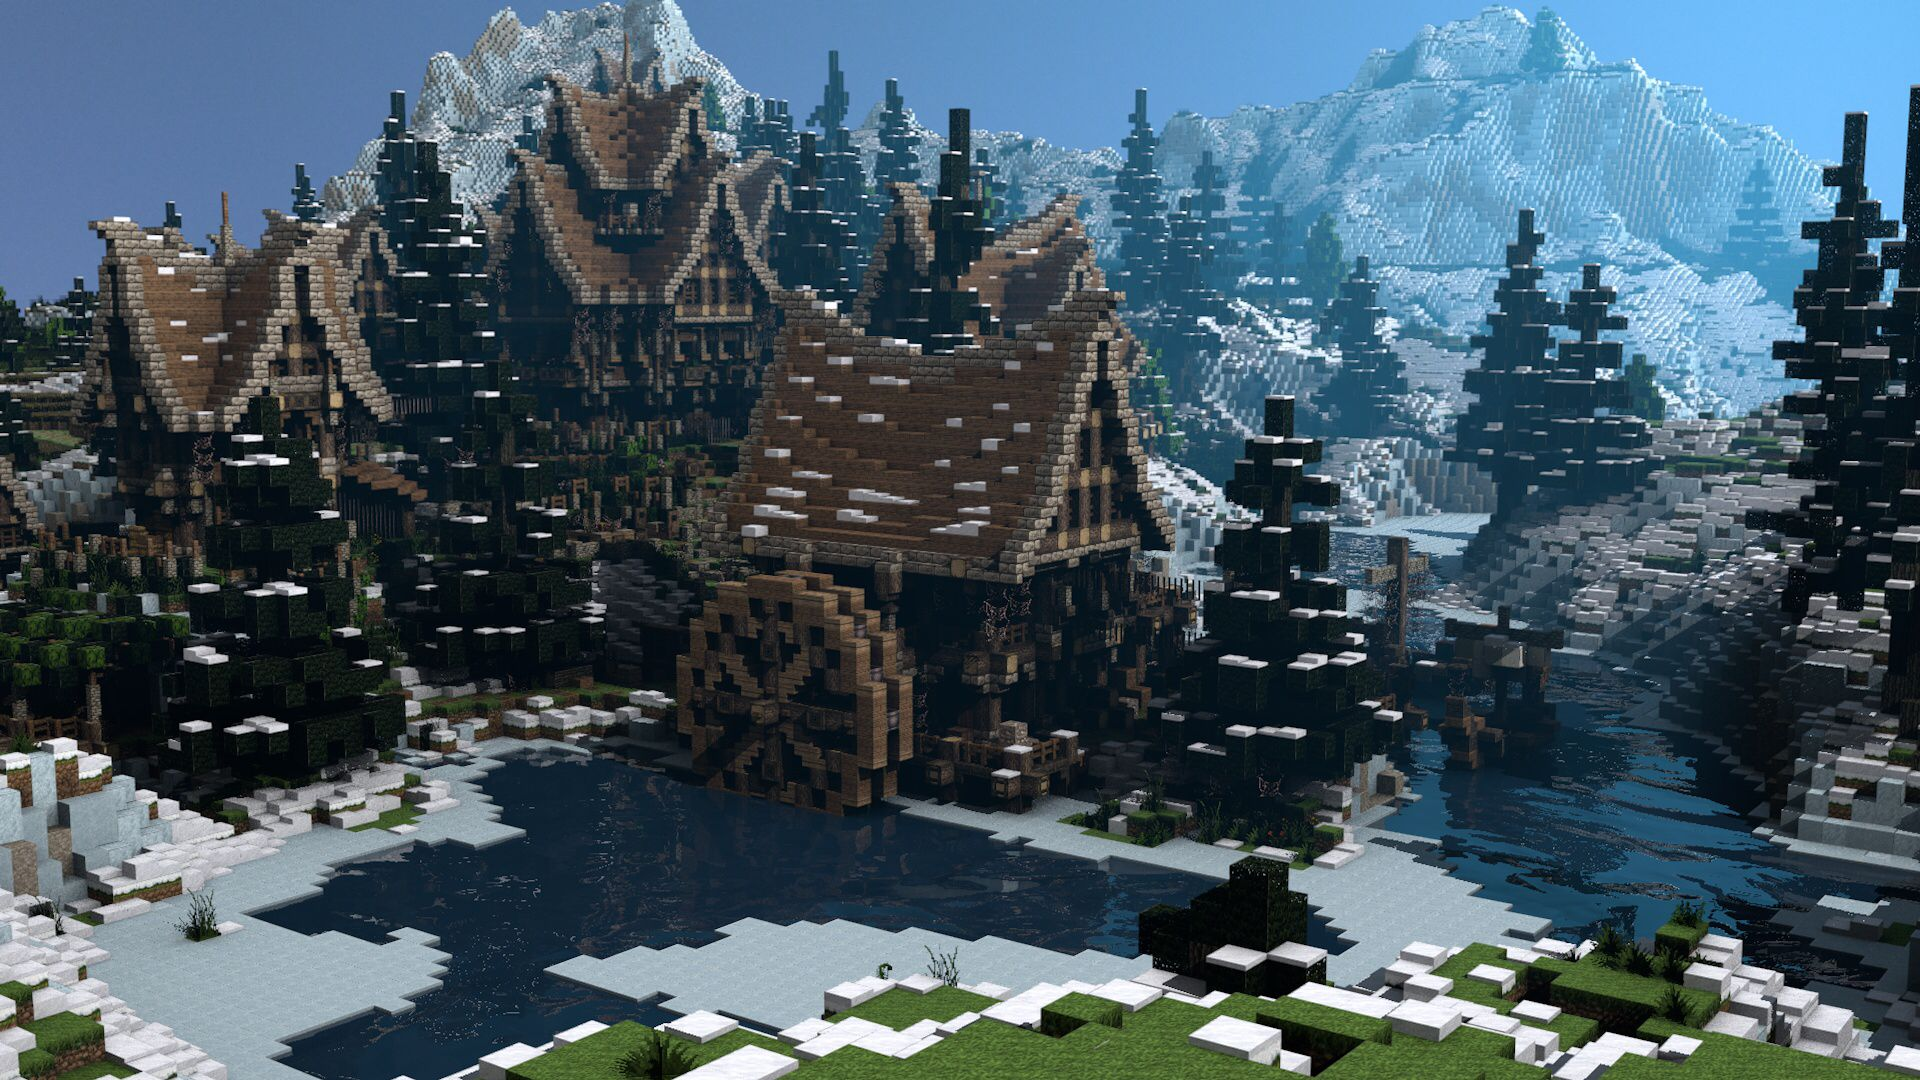 Pin By Tami Evans On Minecraft In 2020